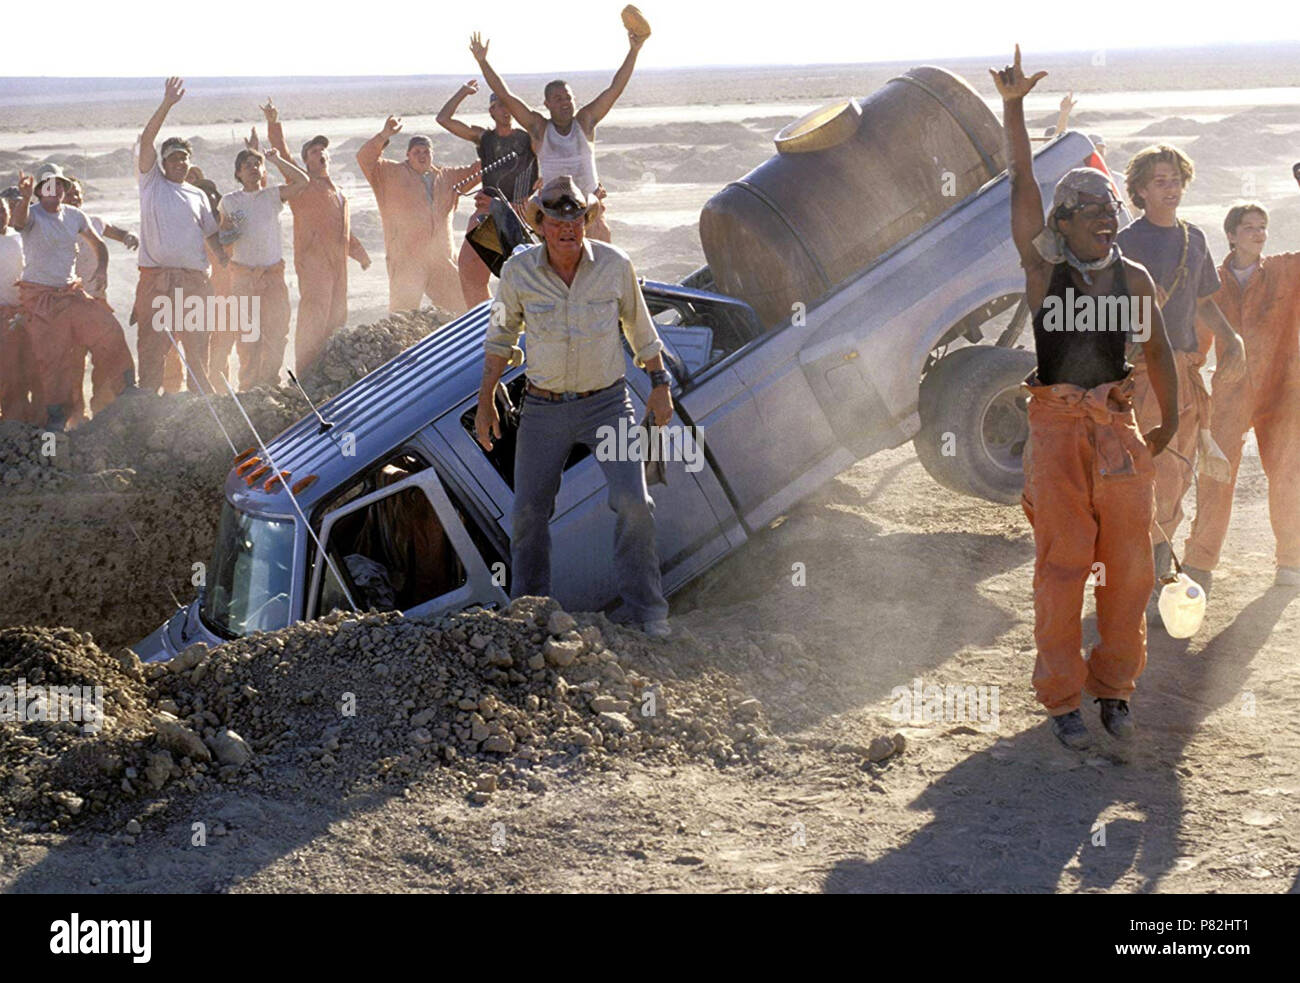 HOLES  2003 Walt Disney Pictures film with Jon Voight - Stock Image